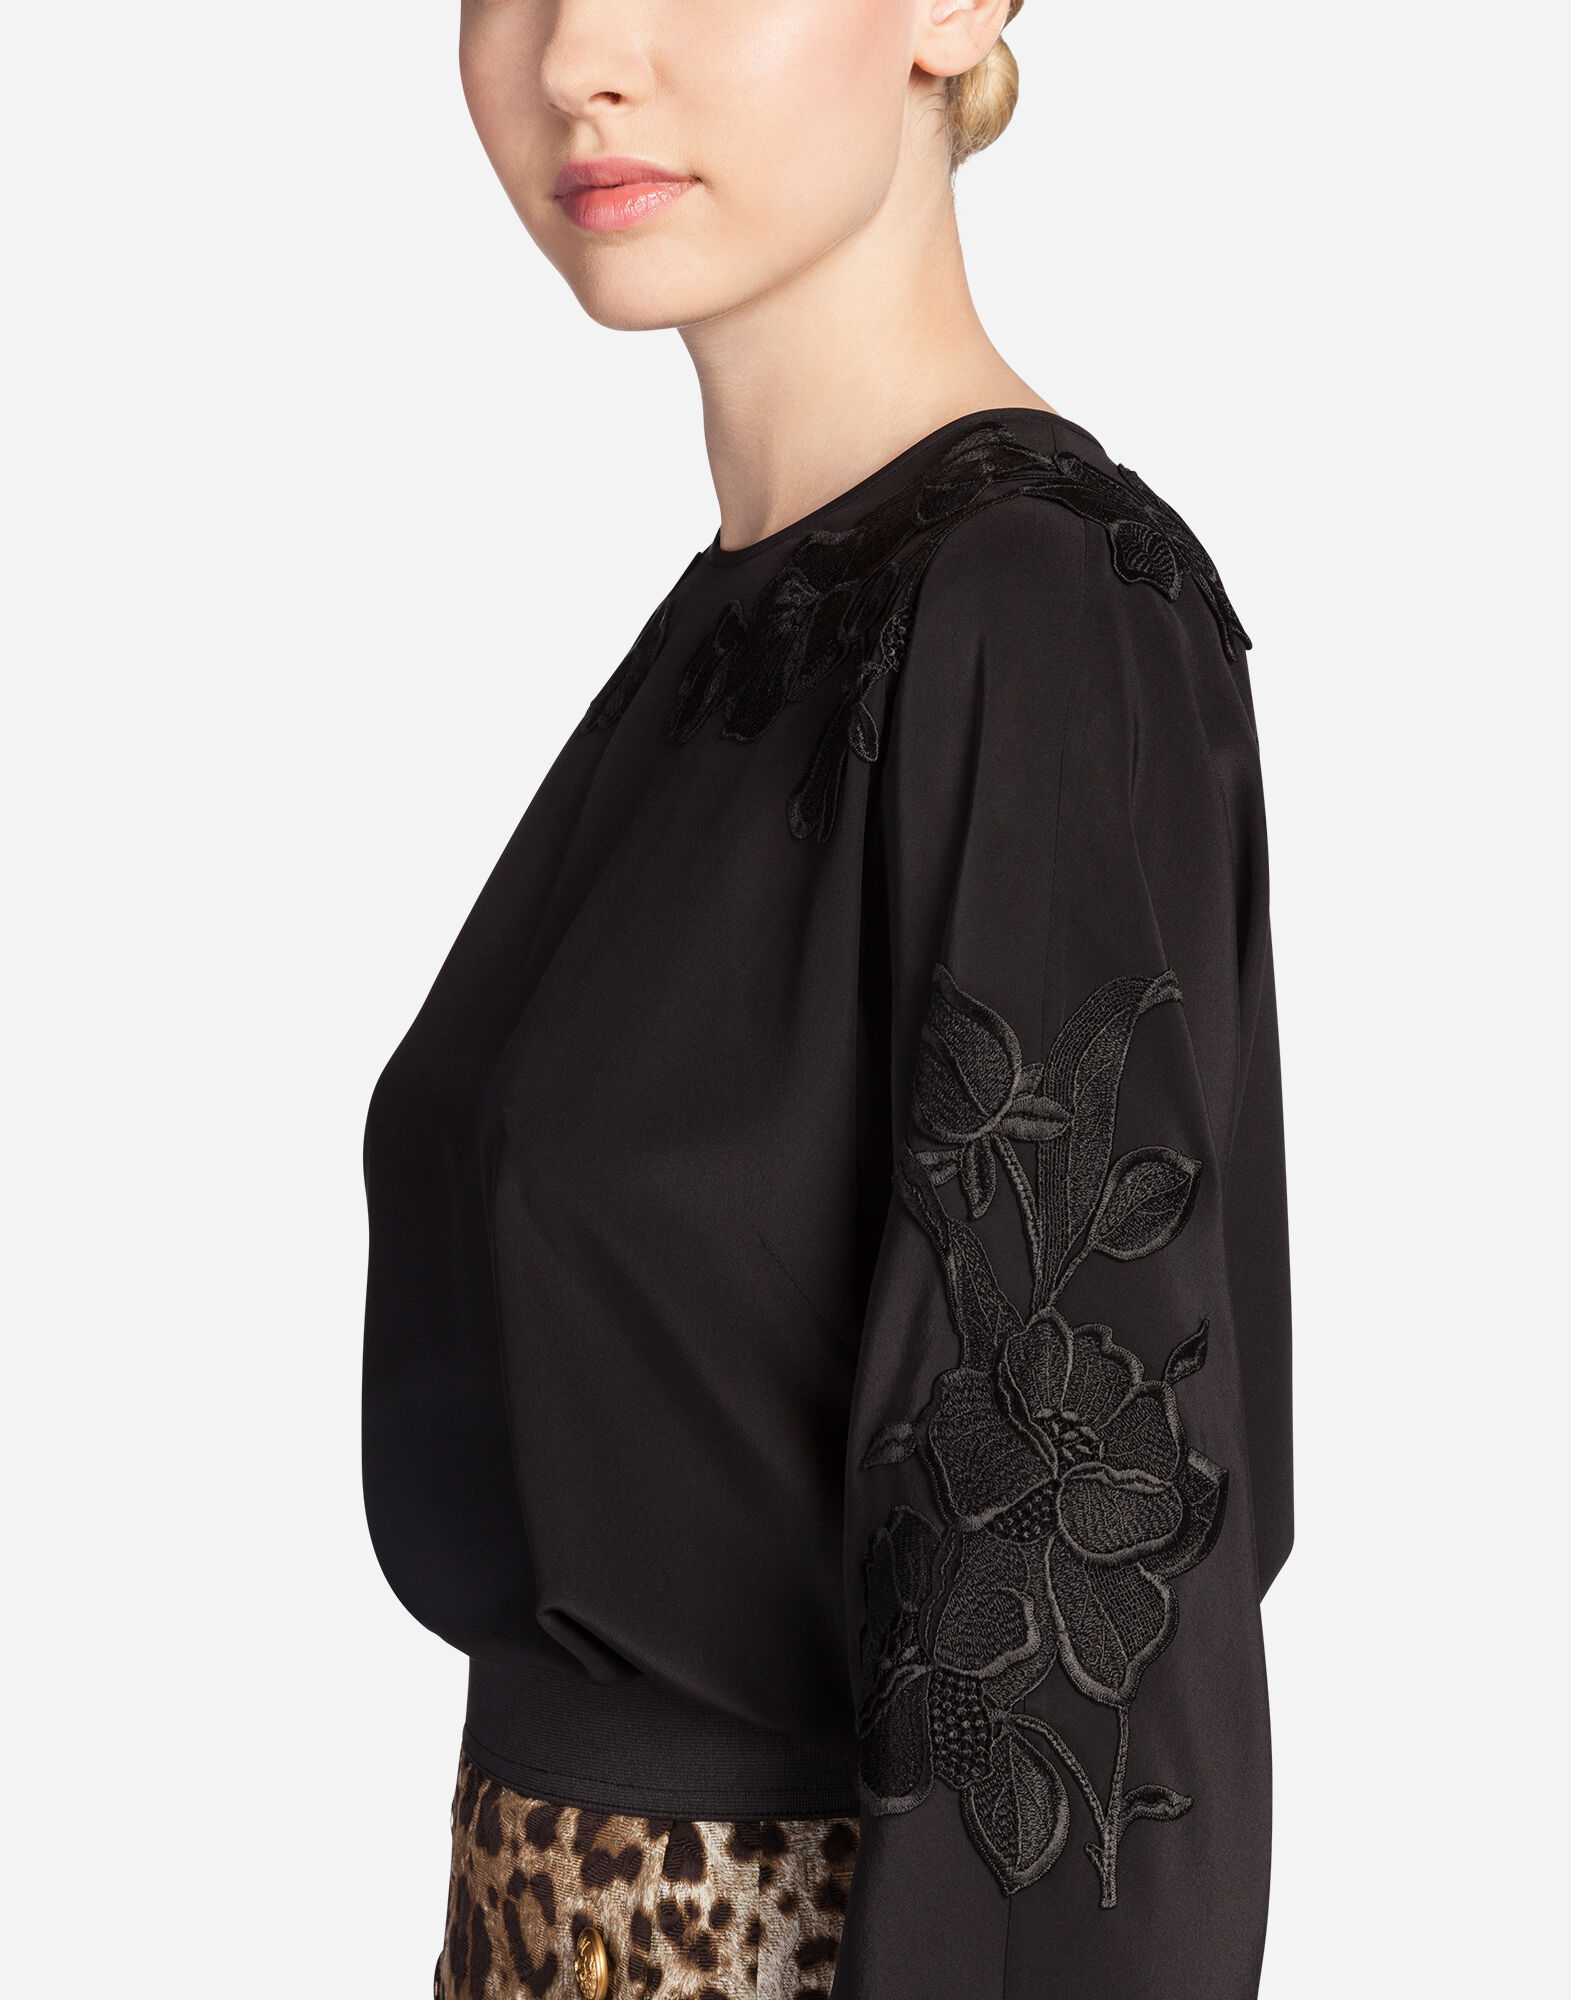 SILK TOP WITH EMBROIDERY